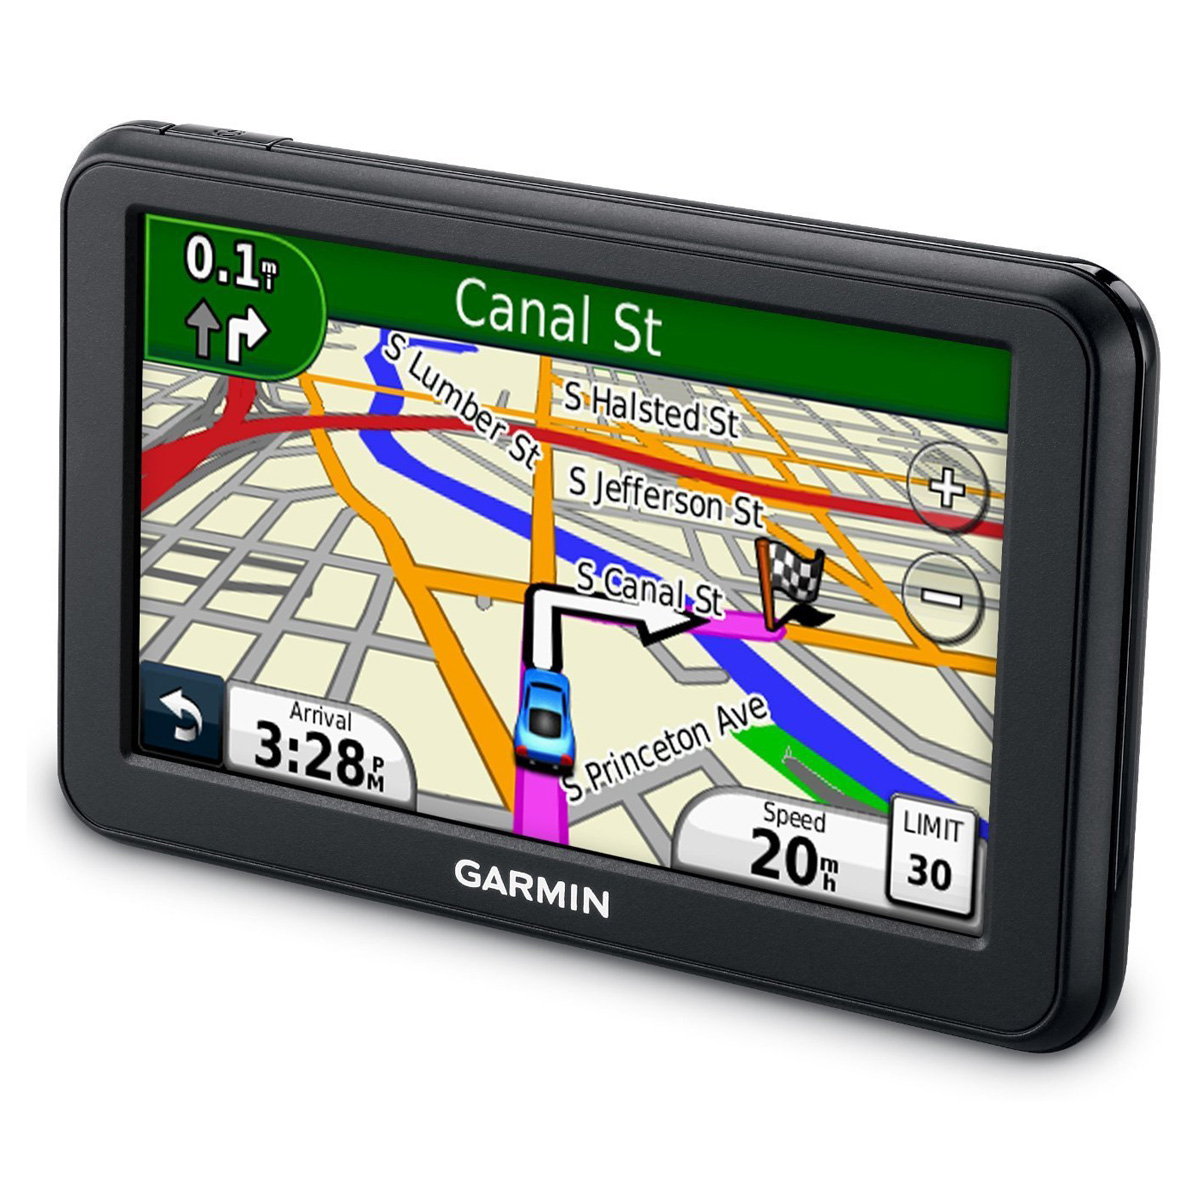 garmin n vi 50 carte europe de l 39 ouest 24 pays gps garmin sur. Black Bedroom Furniture Sets. Home Design Ideas